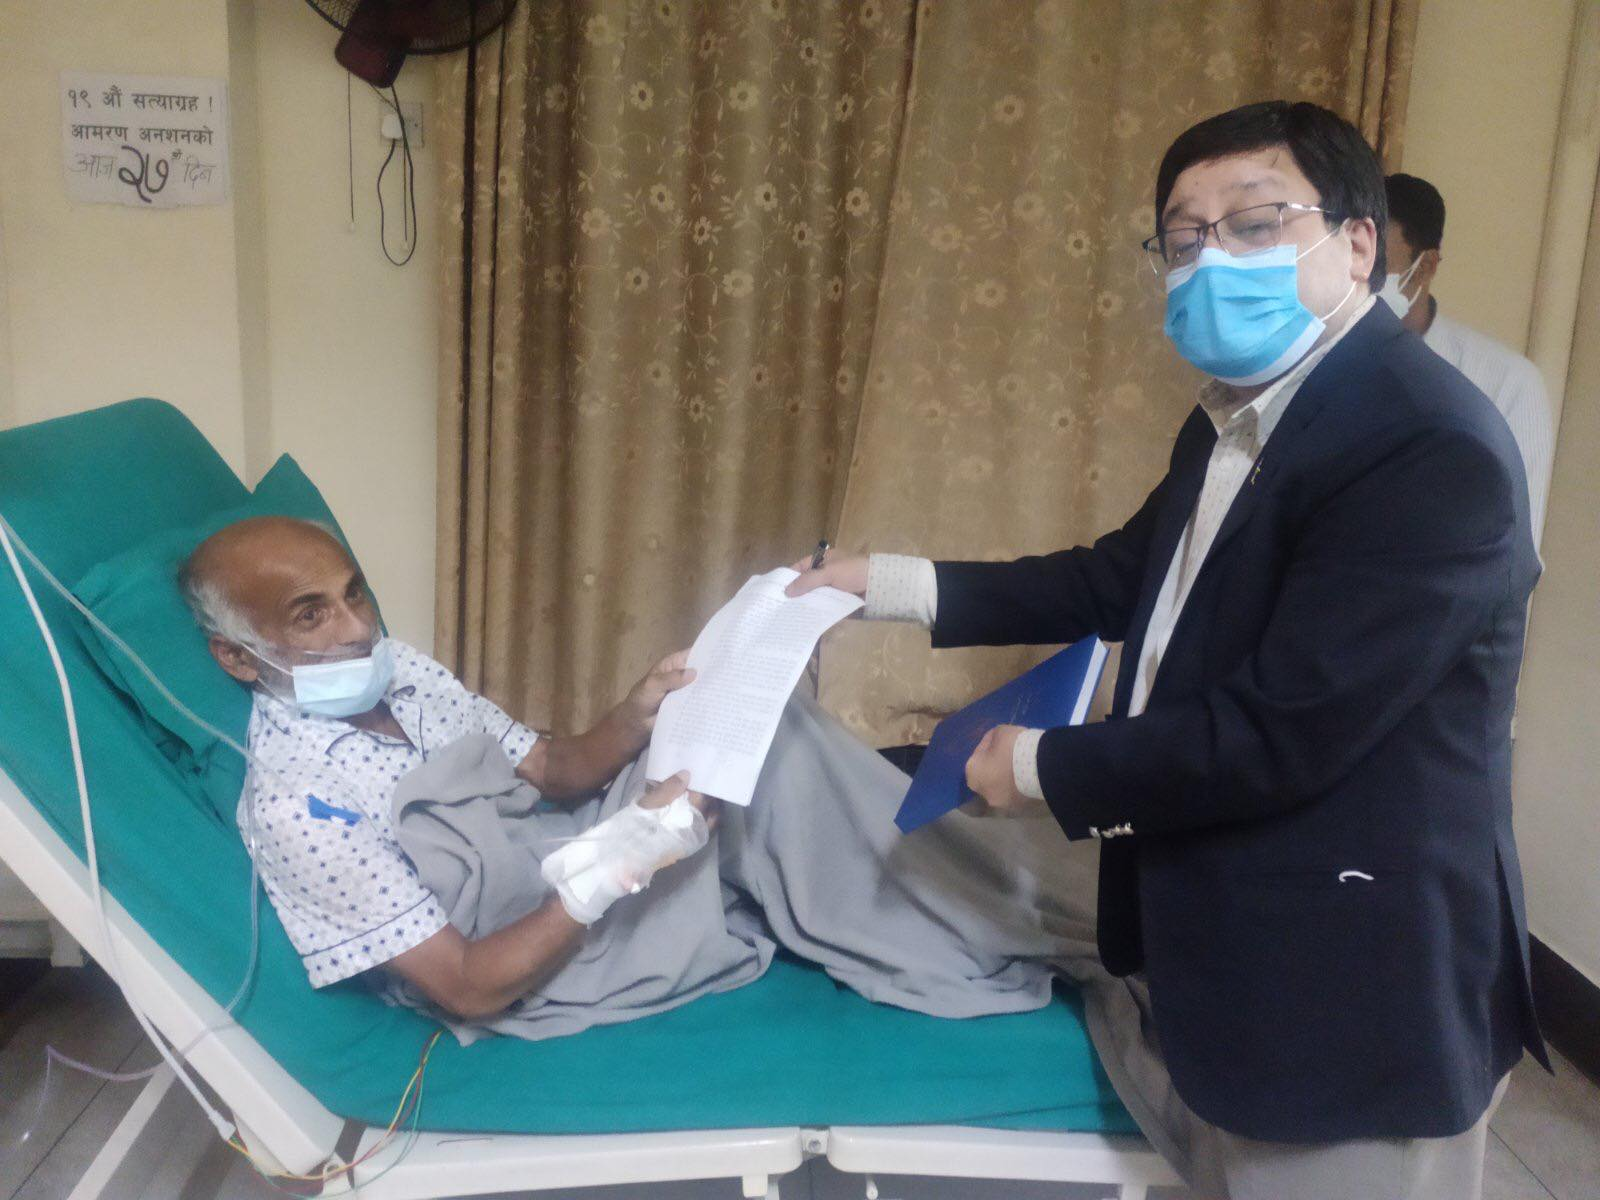 Govt, Dr KC reach eight-point agreement. Dr KC ending his 19th hunger strike today